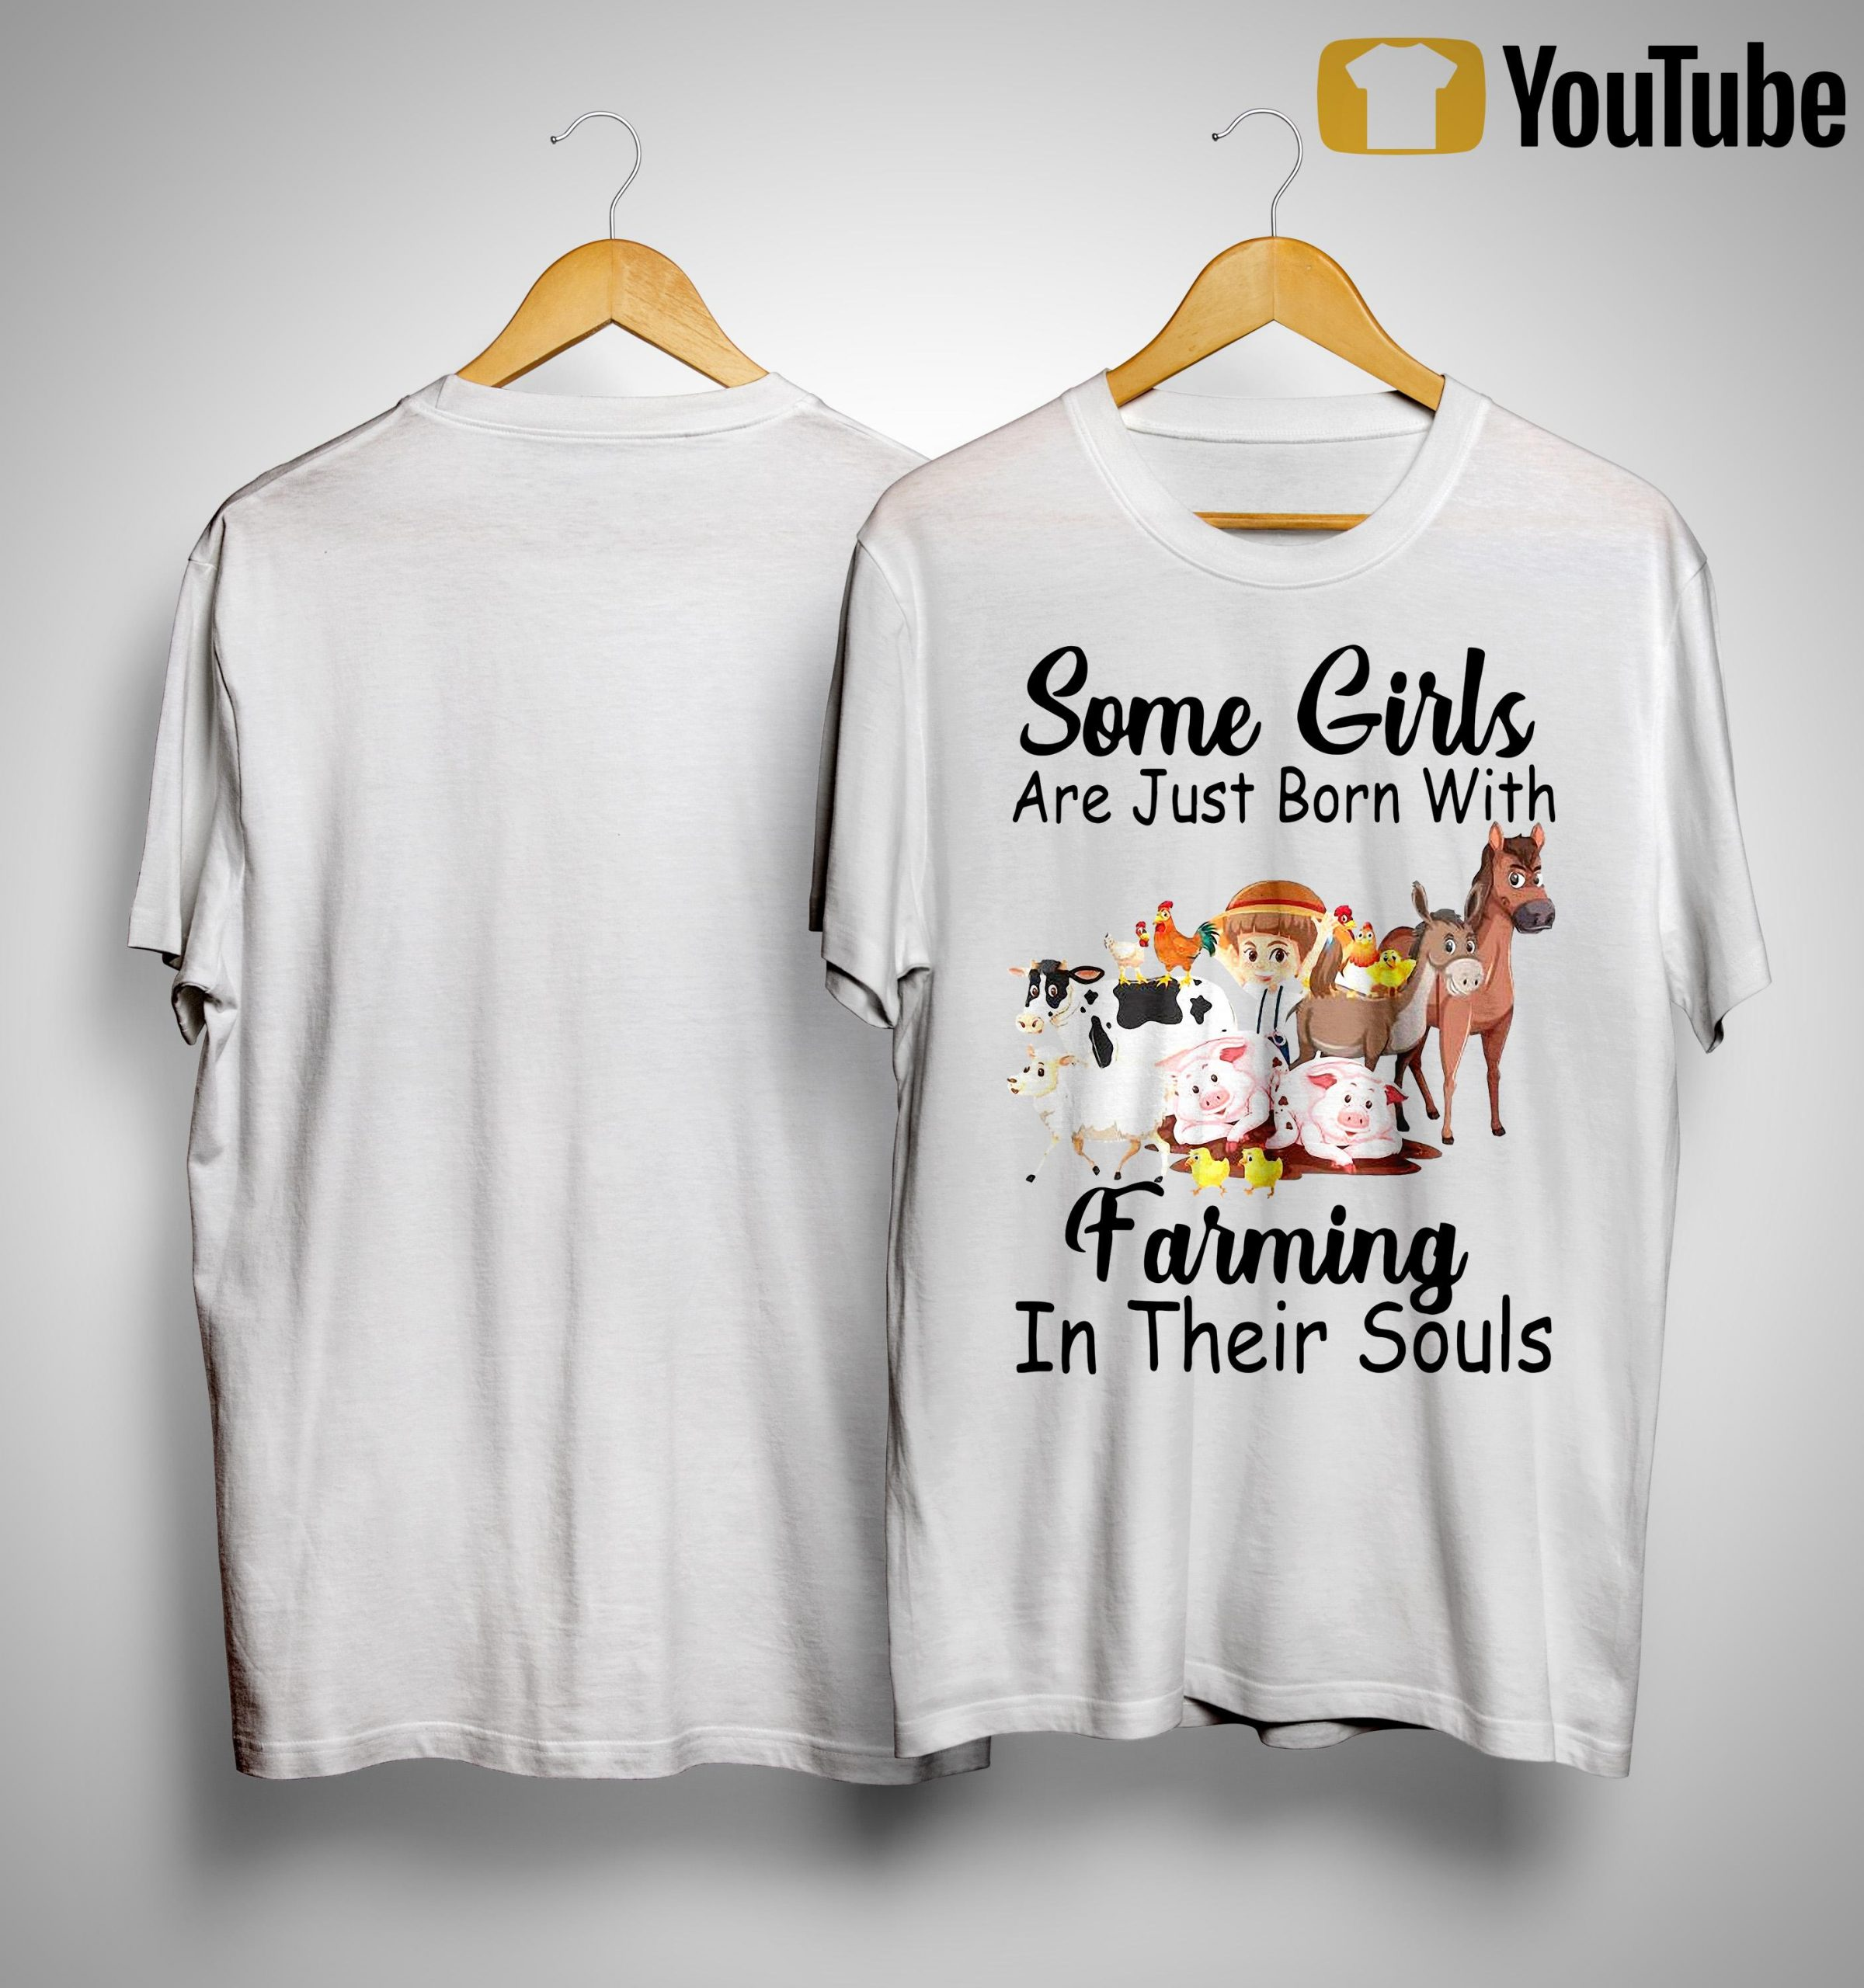 Some Girls Are Just Born With Farming In Their Souls Shirt